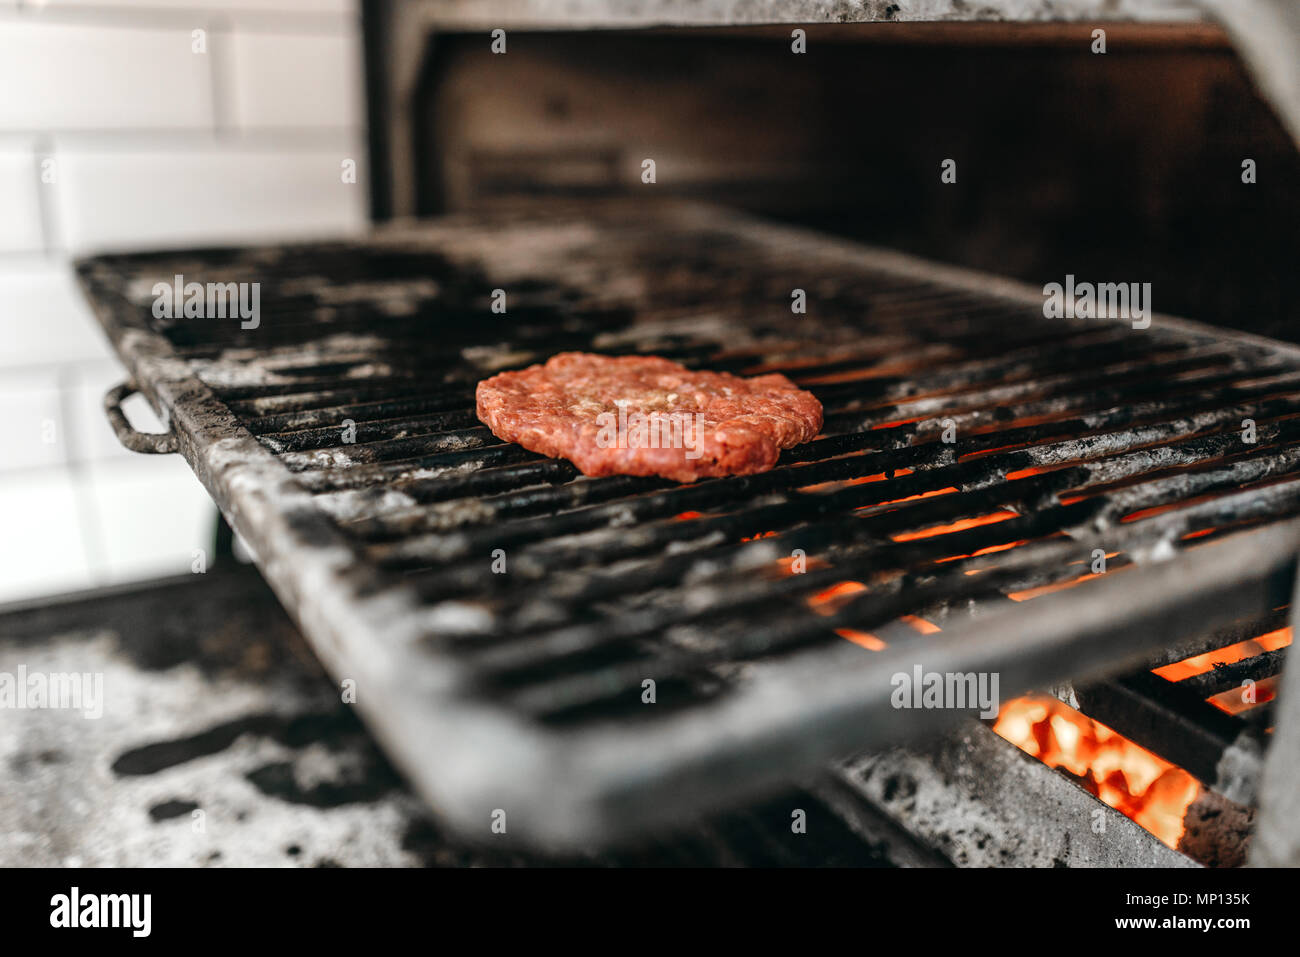 Meat On Grill Oven Burger Cooking Hamburger Preparation Process Fast Food Bbq Stock Photo Alamy